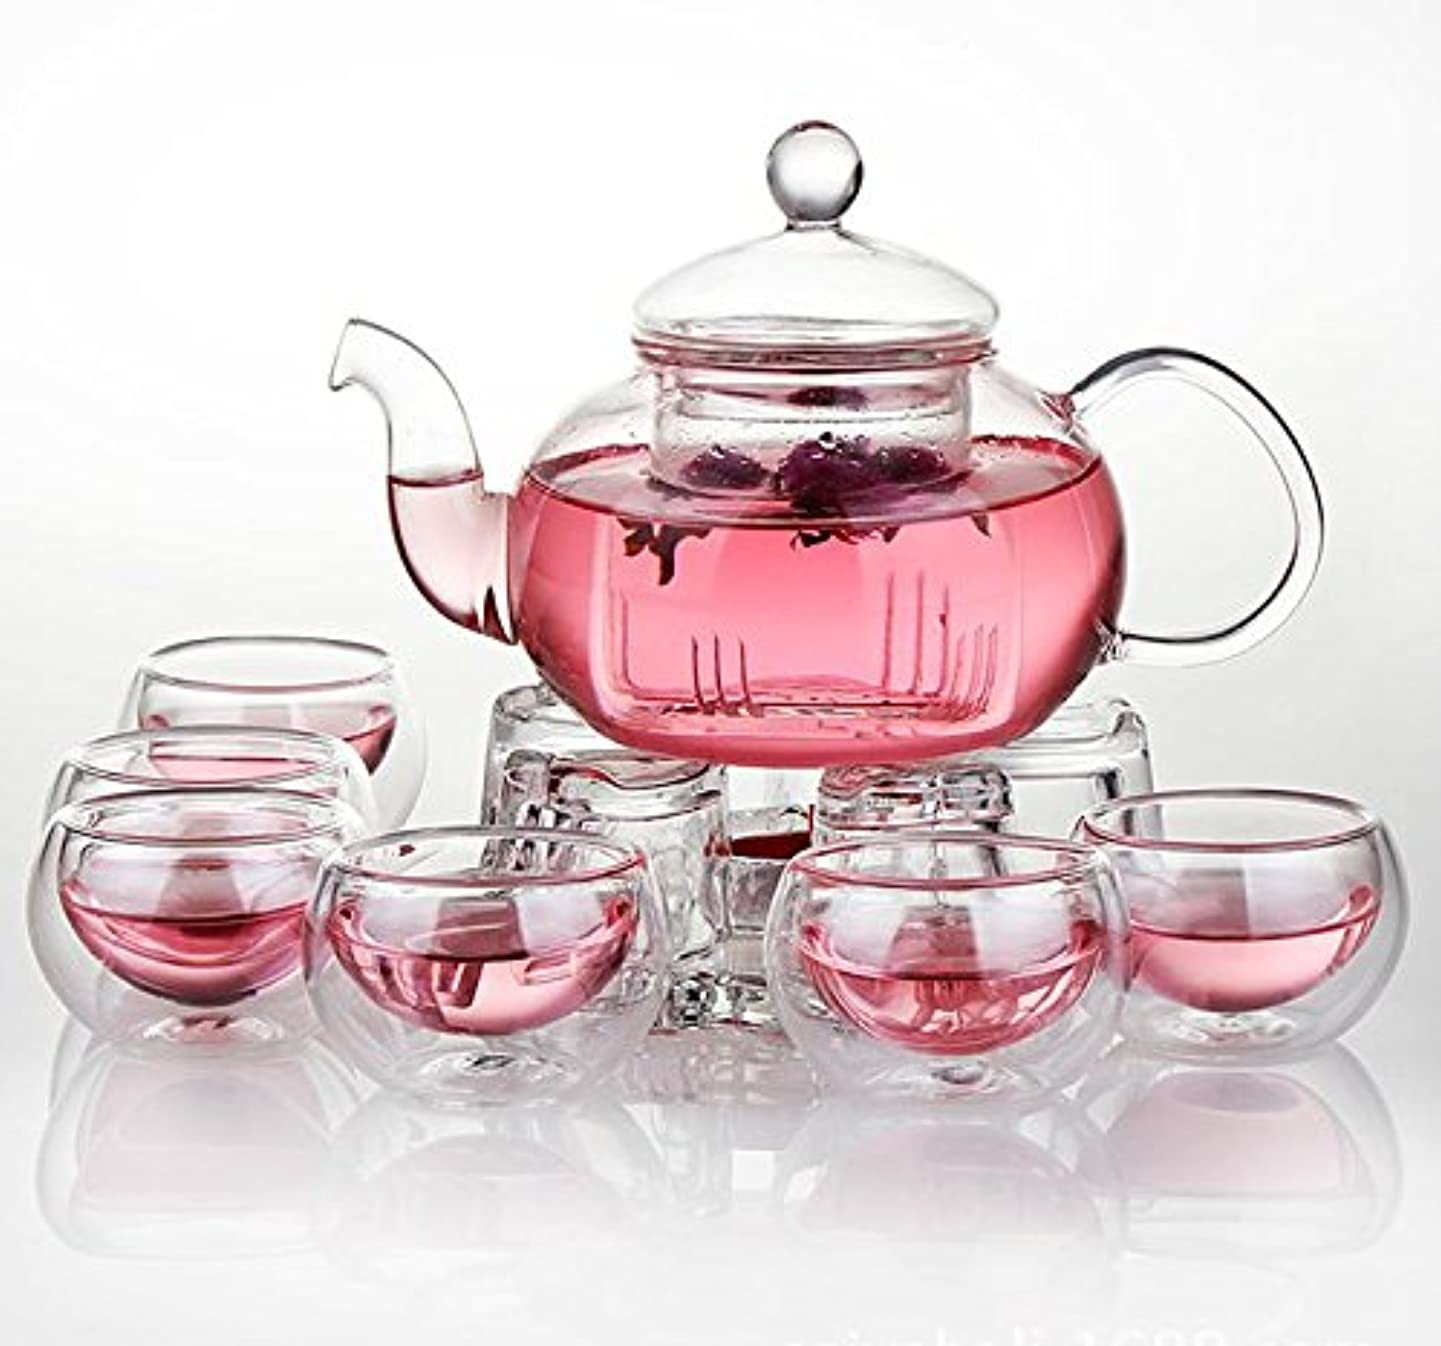 Jusalpha Glass Filtering Tea Maker Teapot with a Warmer and 6 Tea Cups Set (Version 2, 26-Oz)